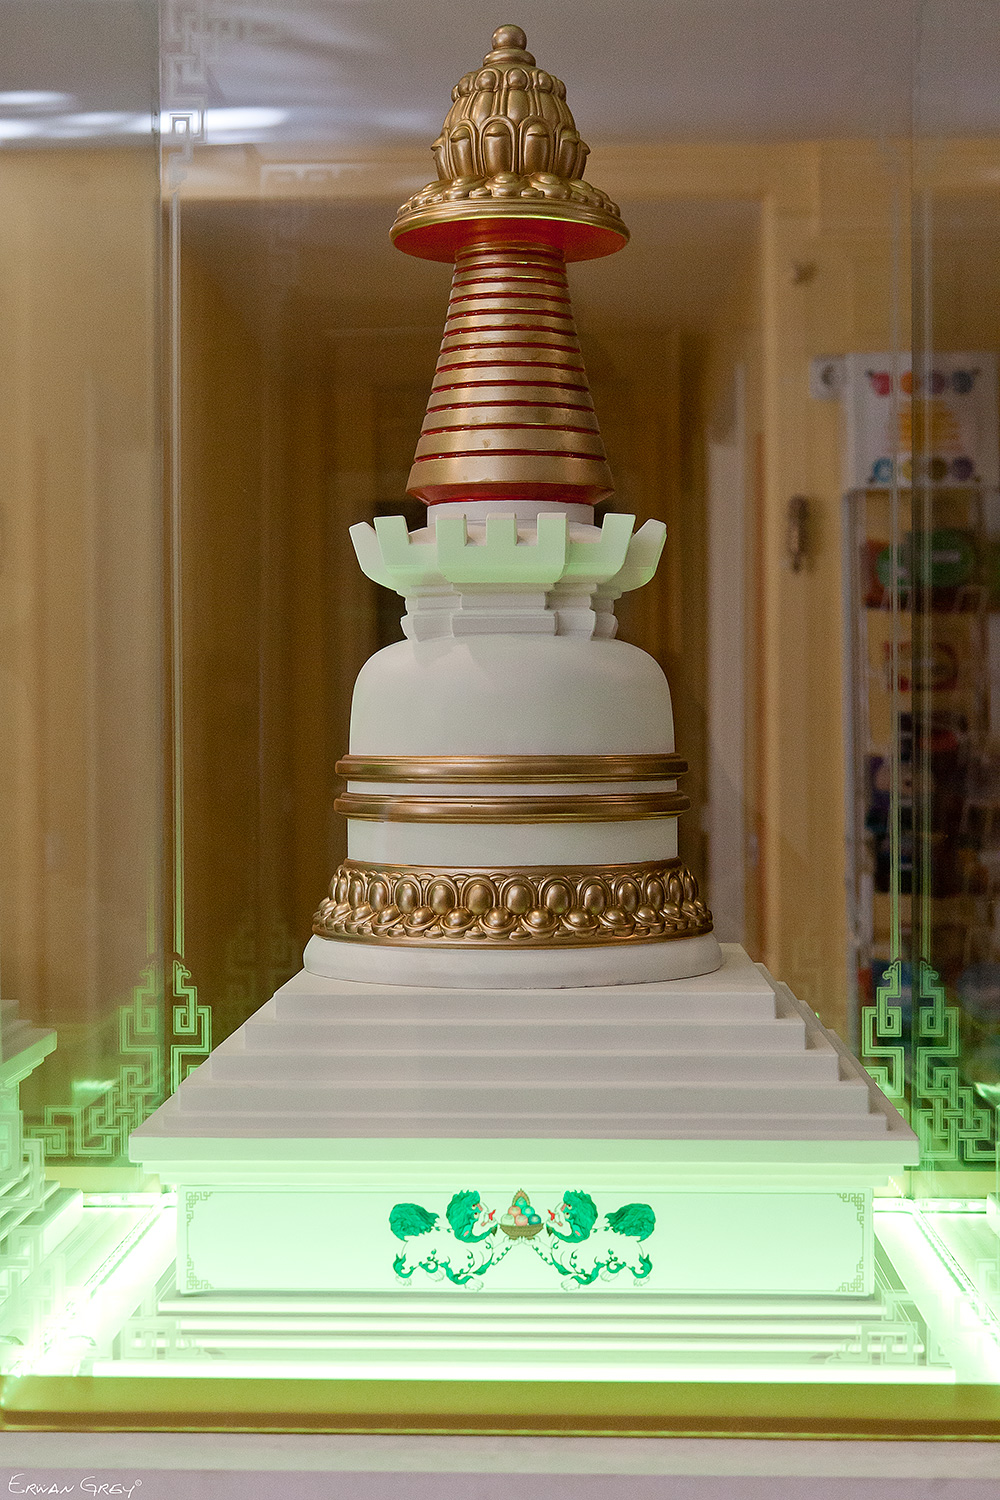 Stupa at Centro Nagarjuna Valencia, Spain